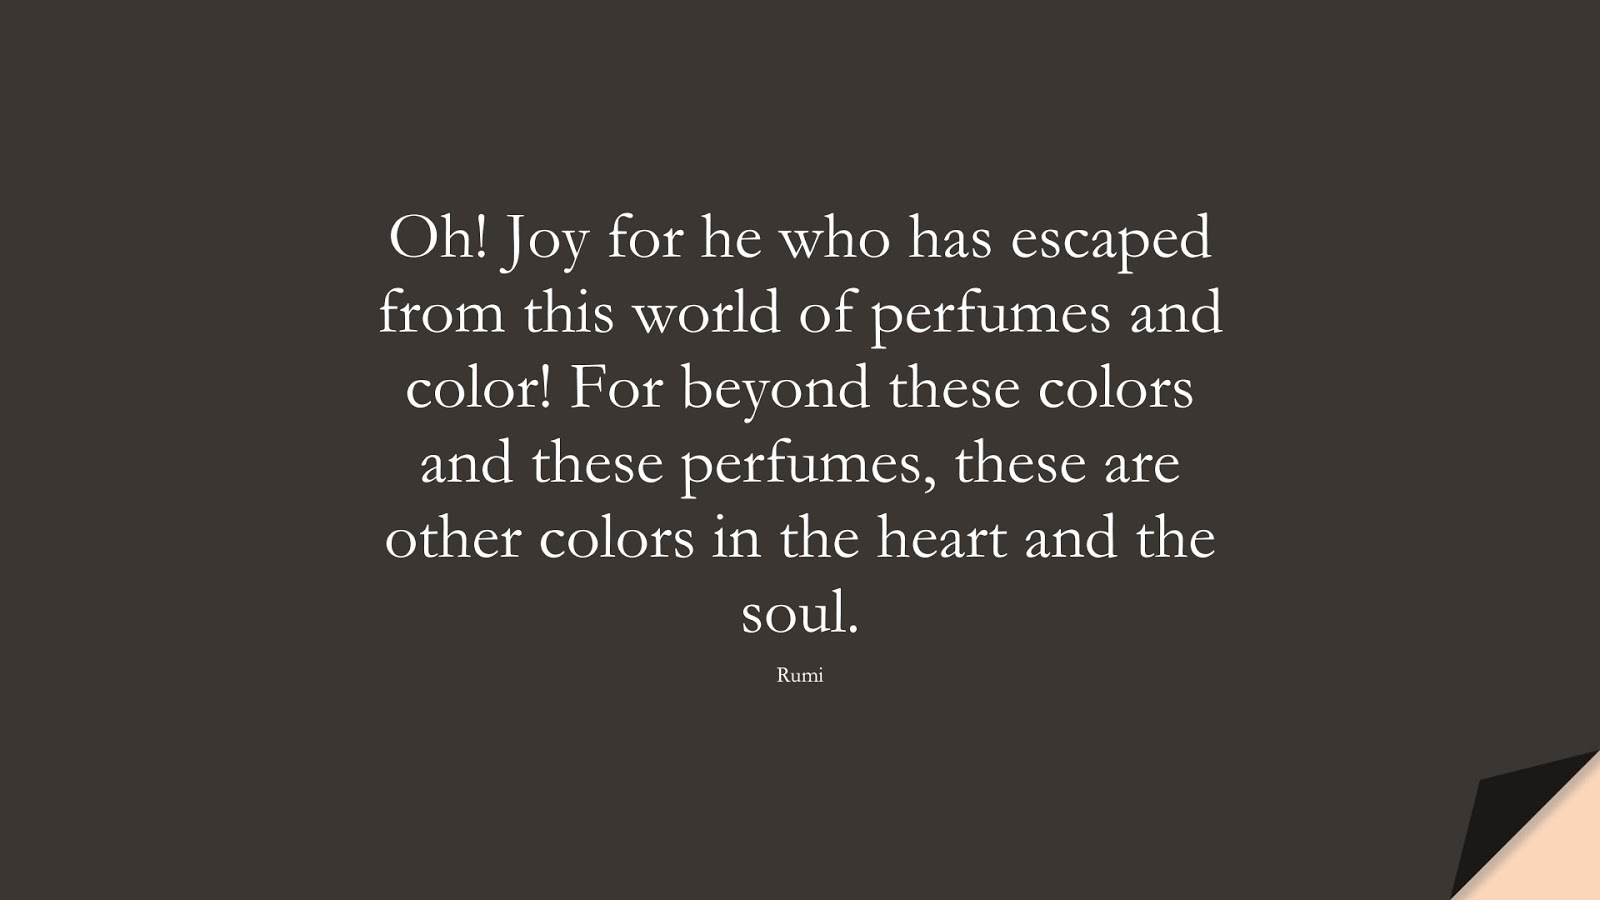 Oh! Joy for he who has escaped from this world of perfumes and color! For beyond these colors and these perfumes, these are other colors in the heart and the soul. (Rumi);  #RumiQuotes